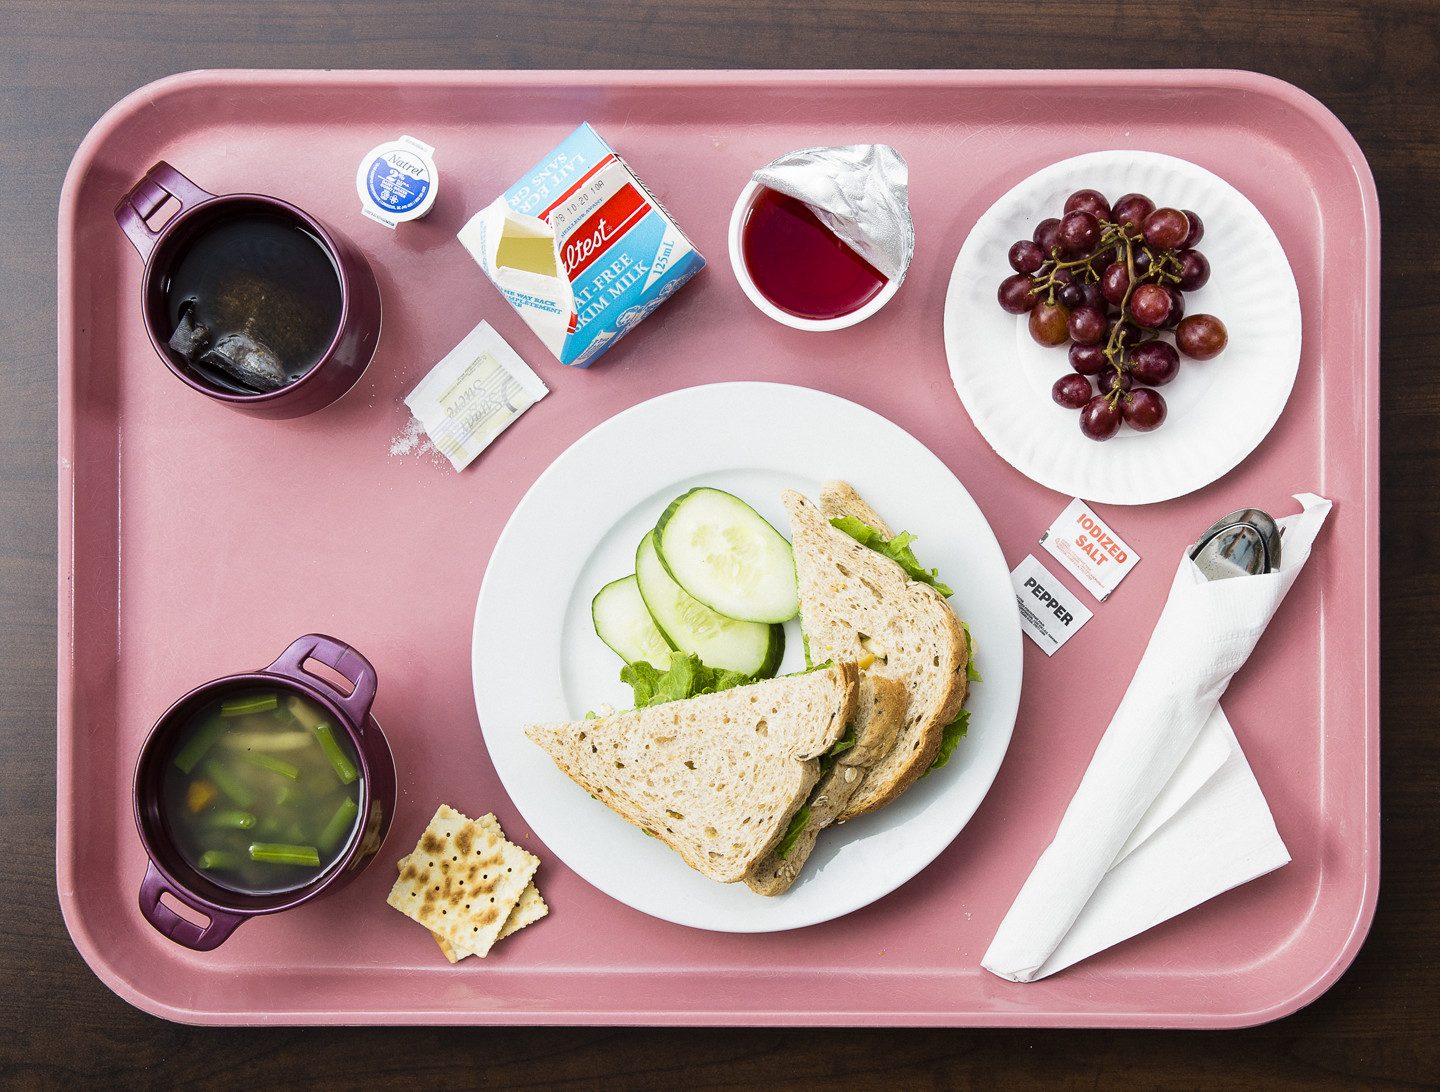 Tray of food from Scarborough General Hospital